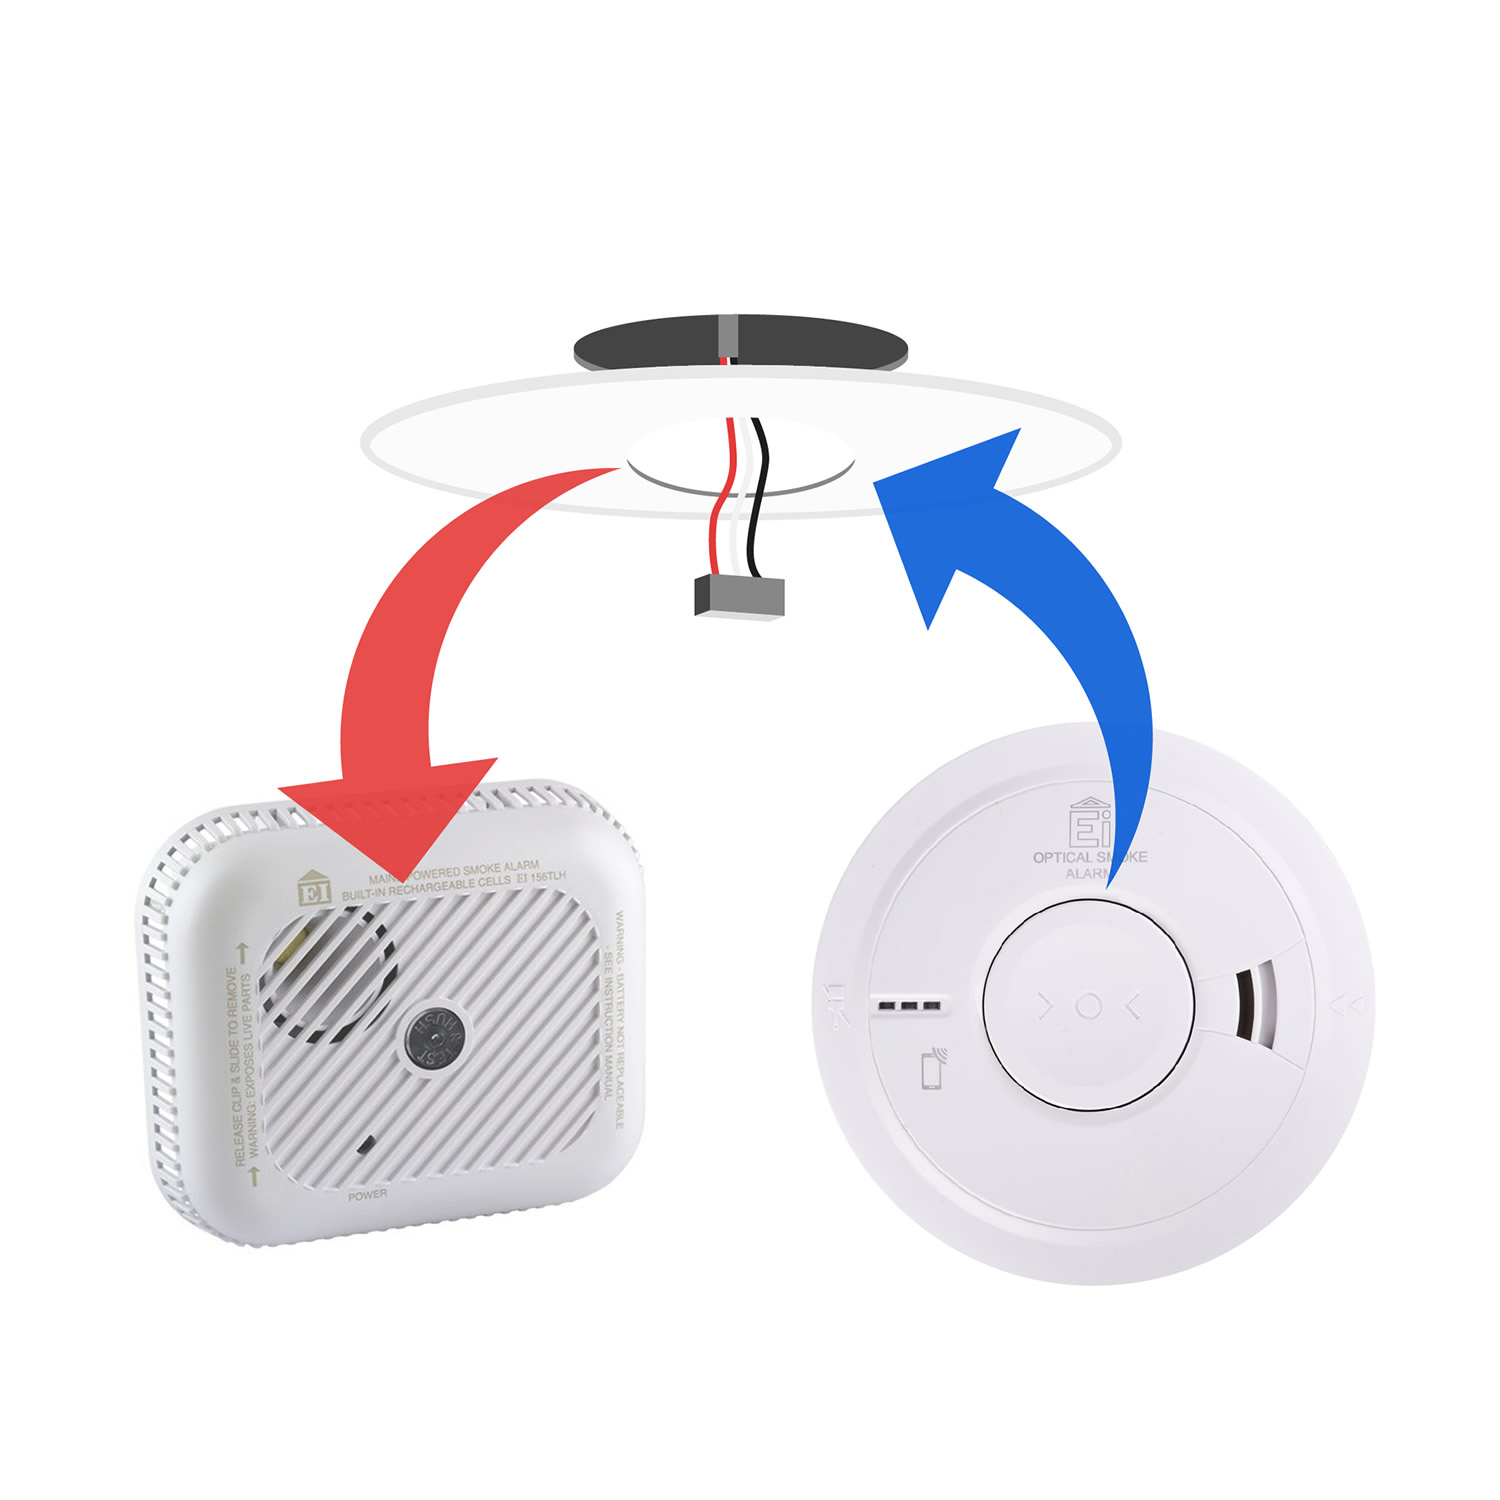 Replacement for Ei156 Smoke Alarm